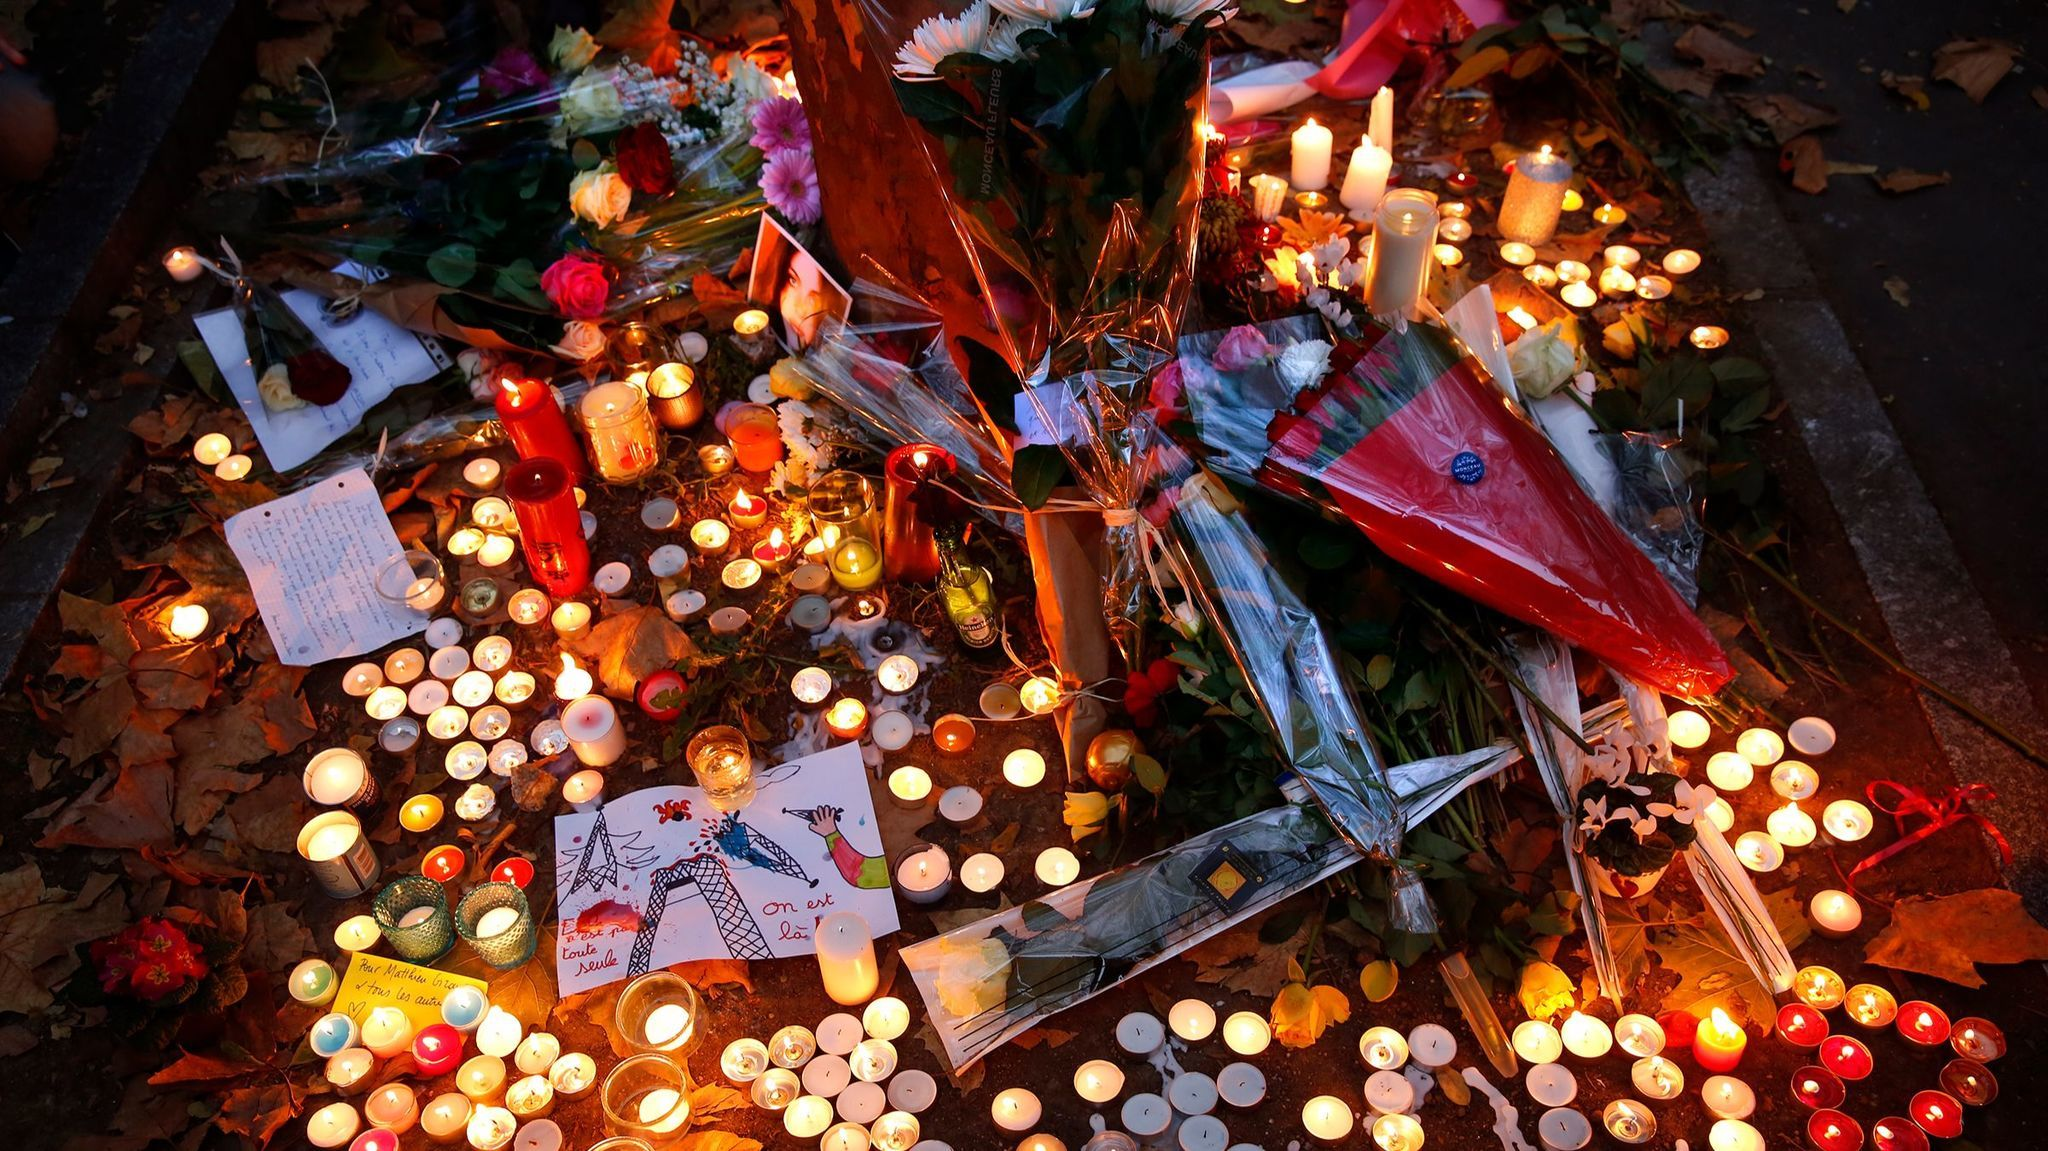 People pay tribute to those who died in the Nov. 13, 2015 Paris attacks at the Bataclan Theatre.